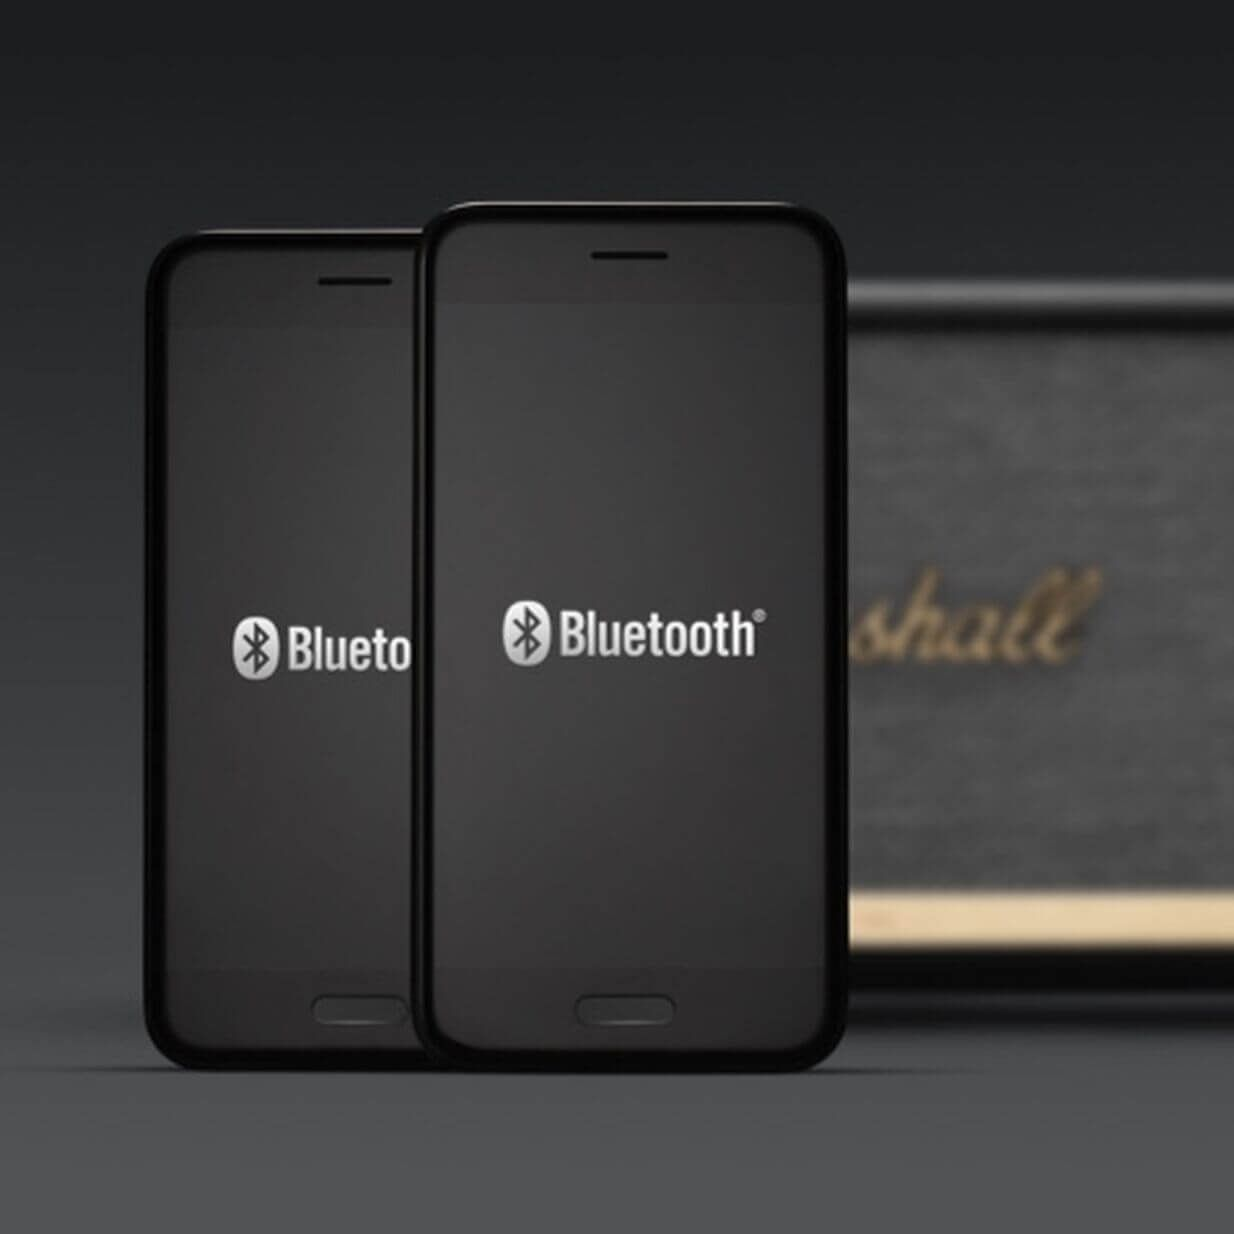 Wireless connectivity with Bluetooth v5.0